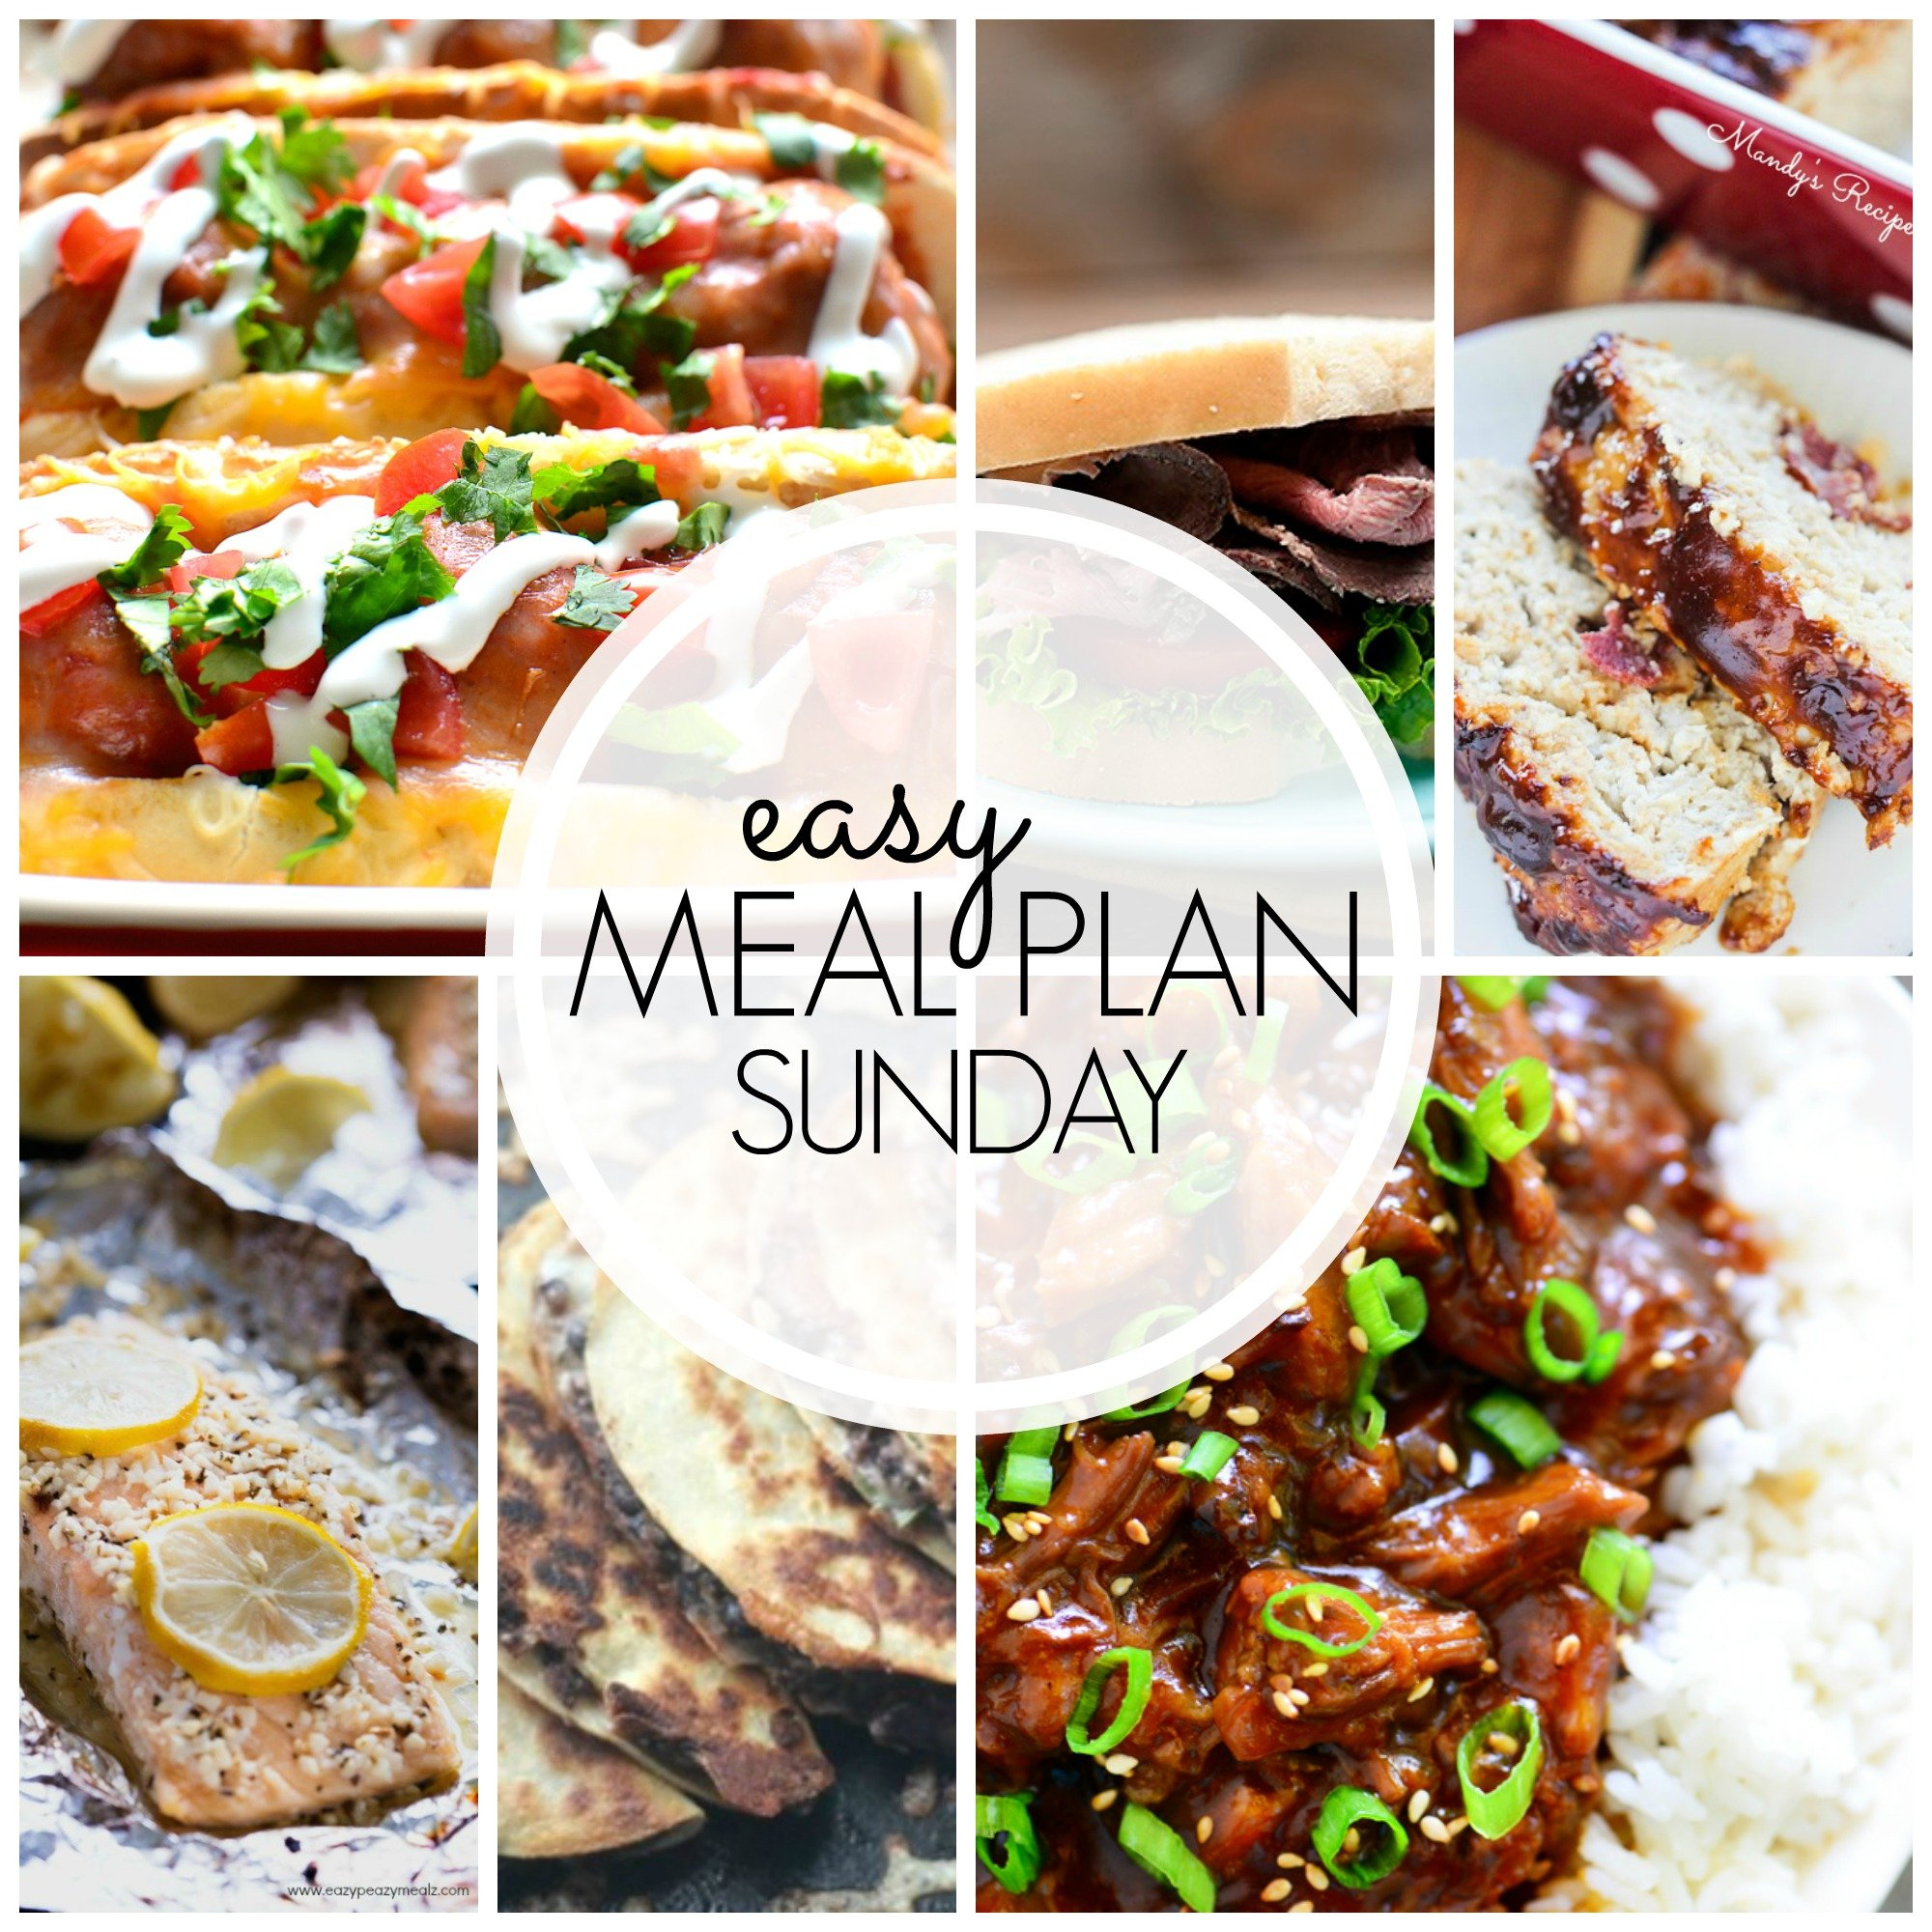 EASY MEAL PLAN – Week 44 - 7 delicious dinners and 2 desserts!